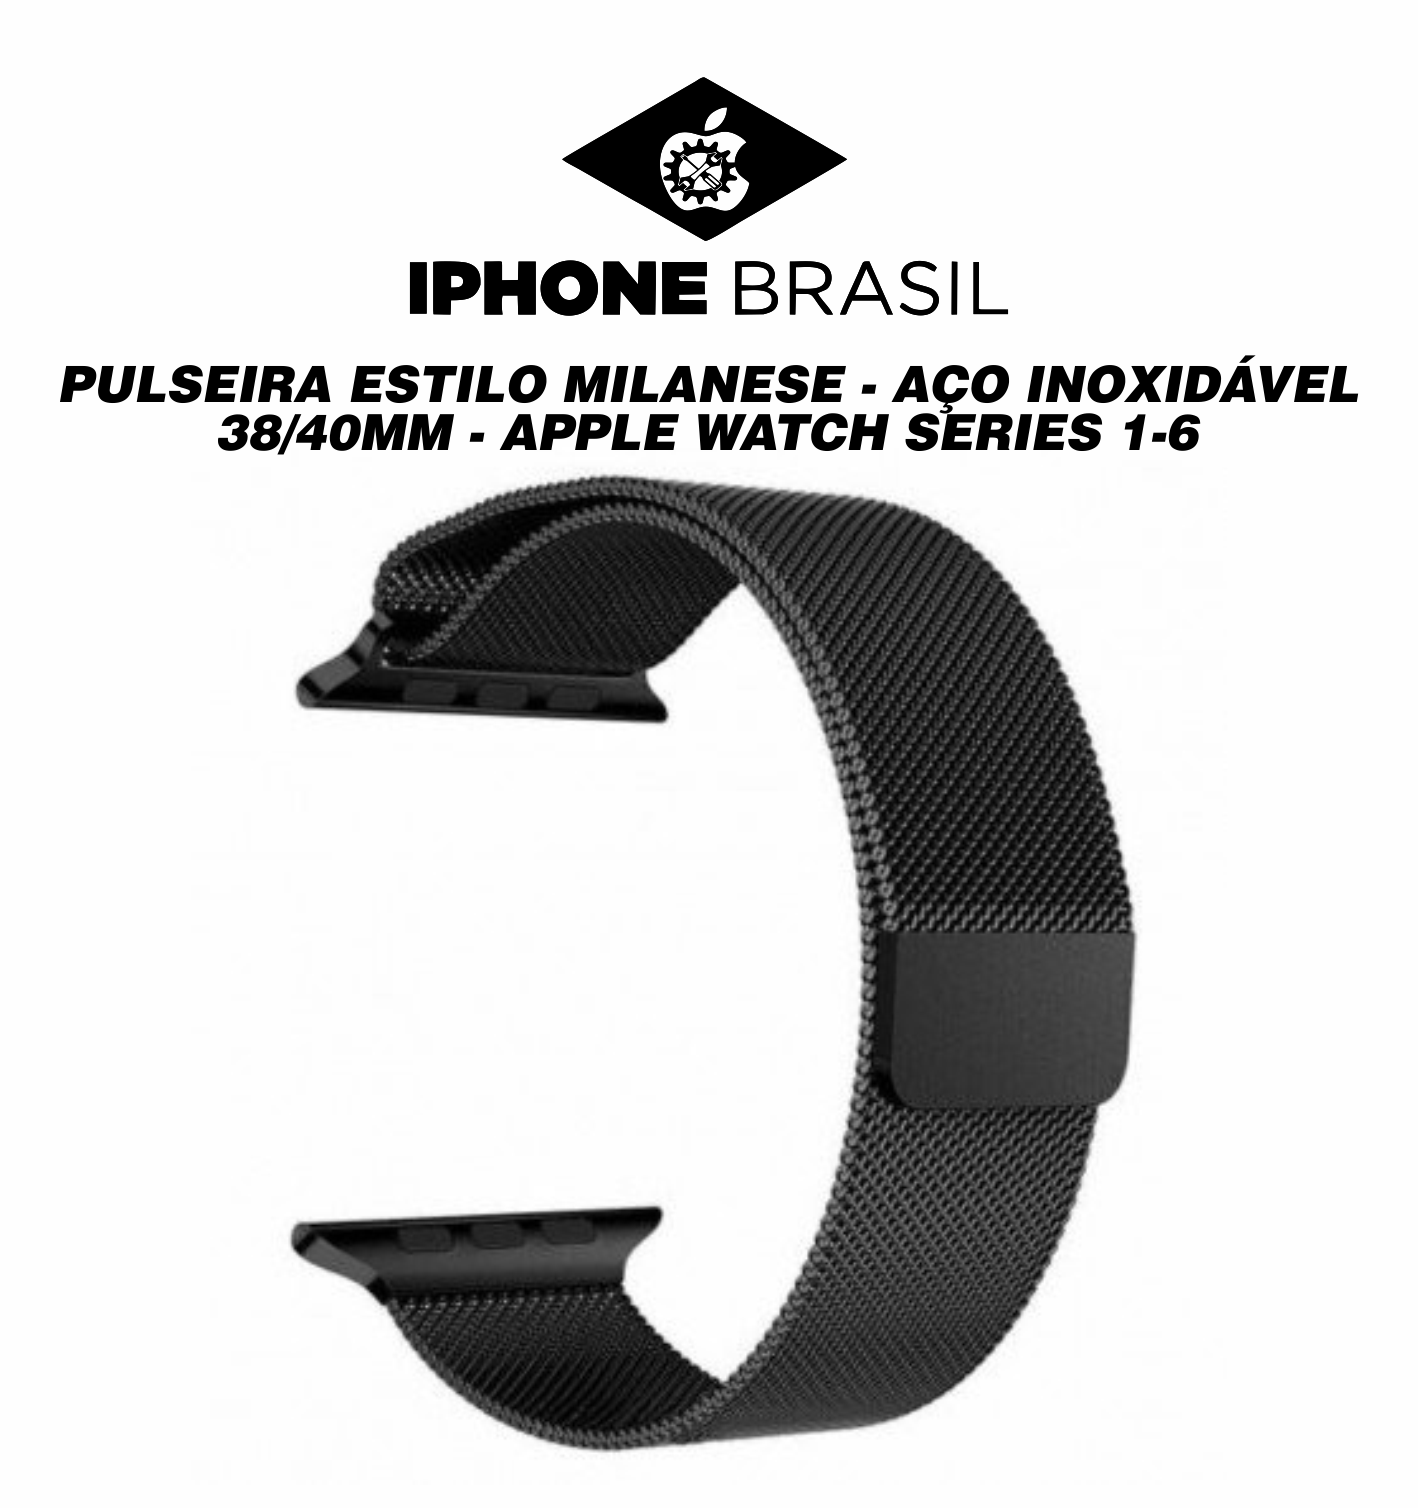 PULSEIRA APPLE WATCH 38/40MM...